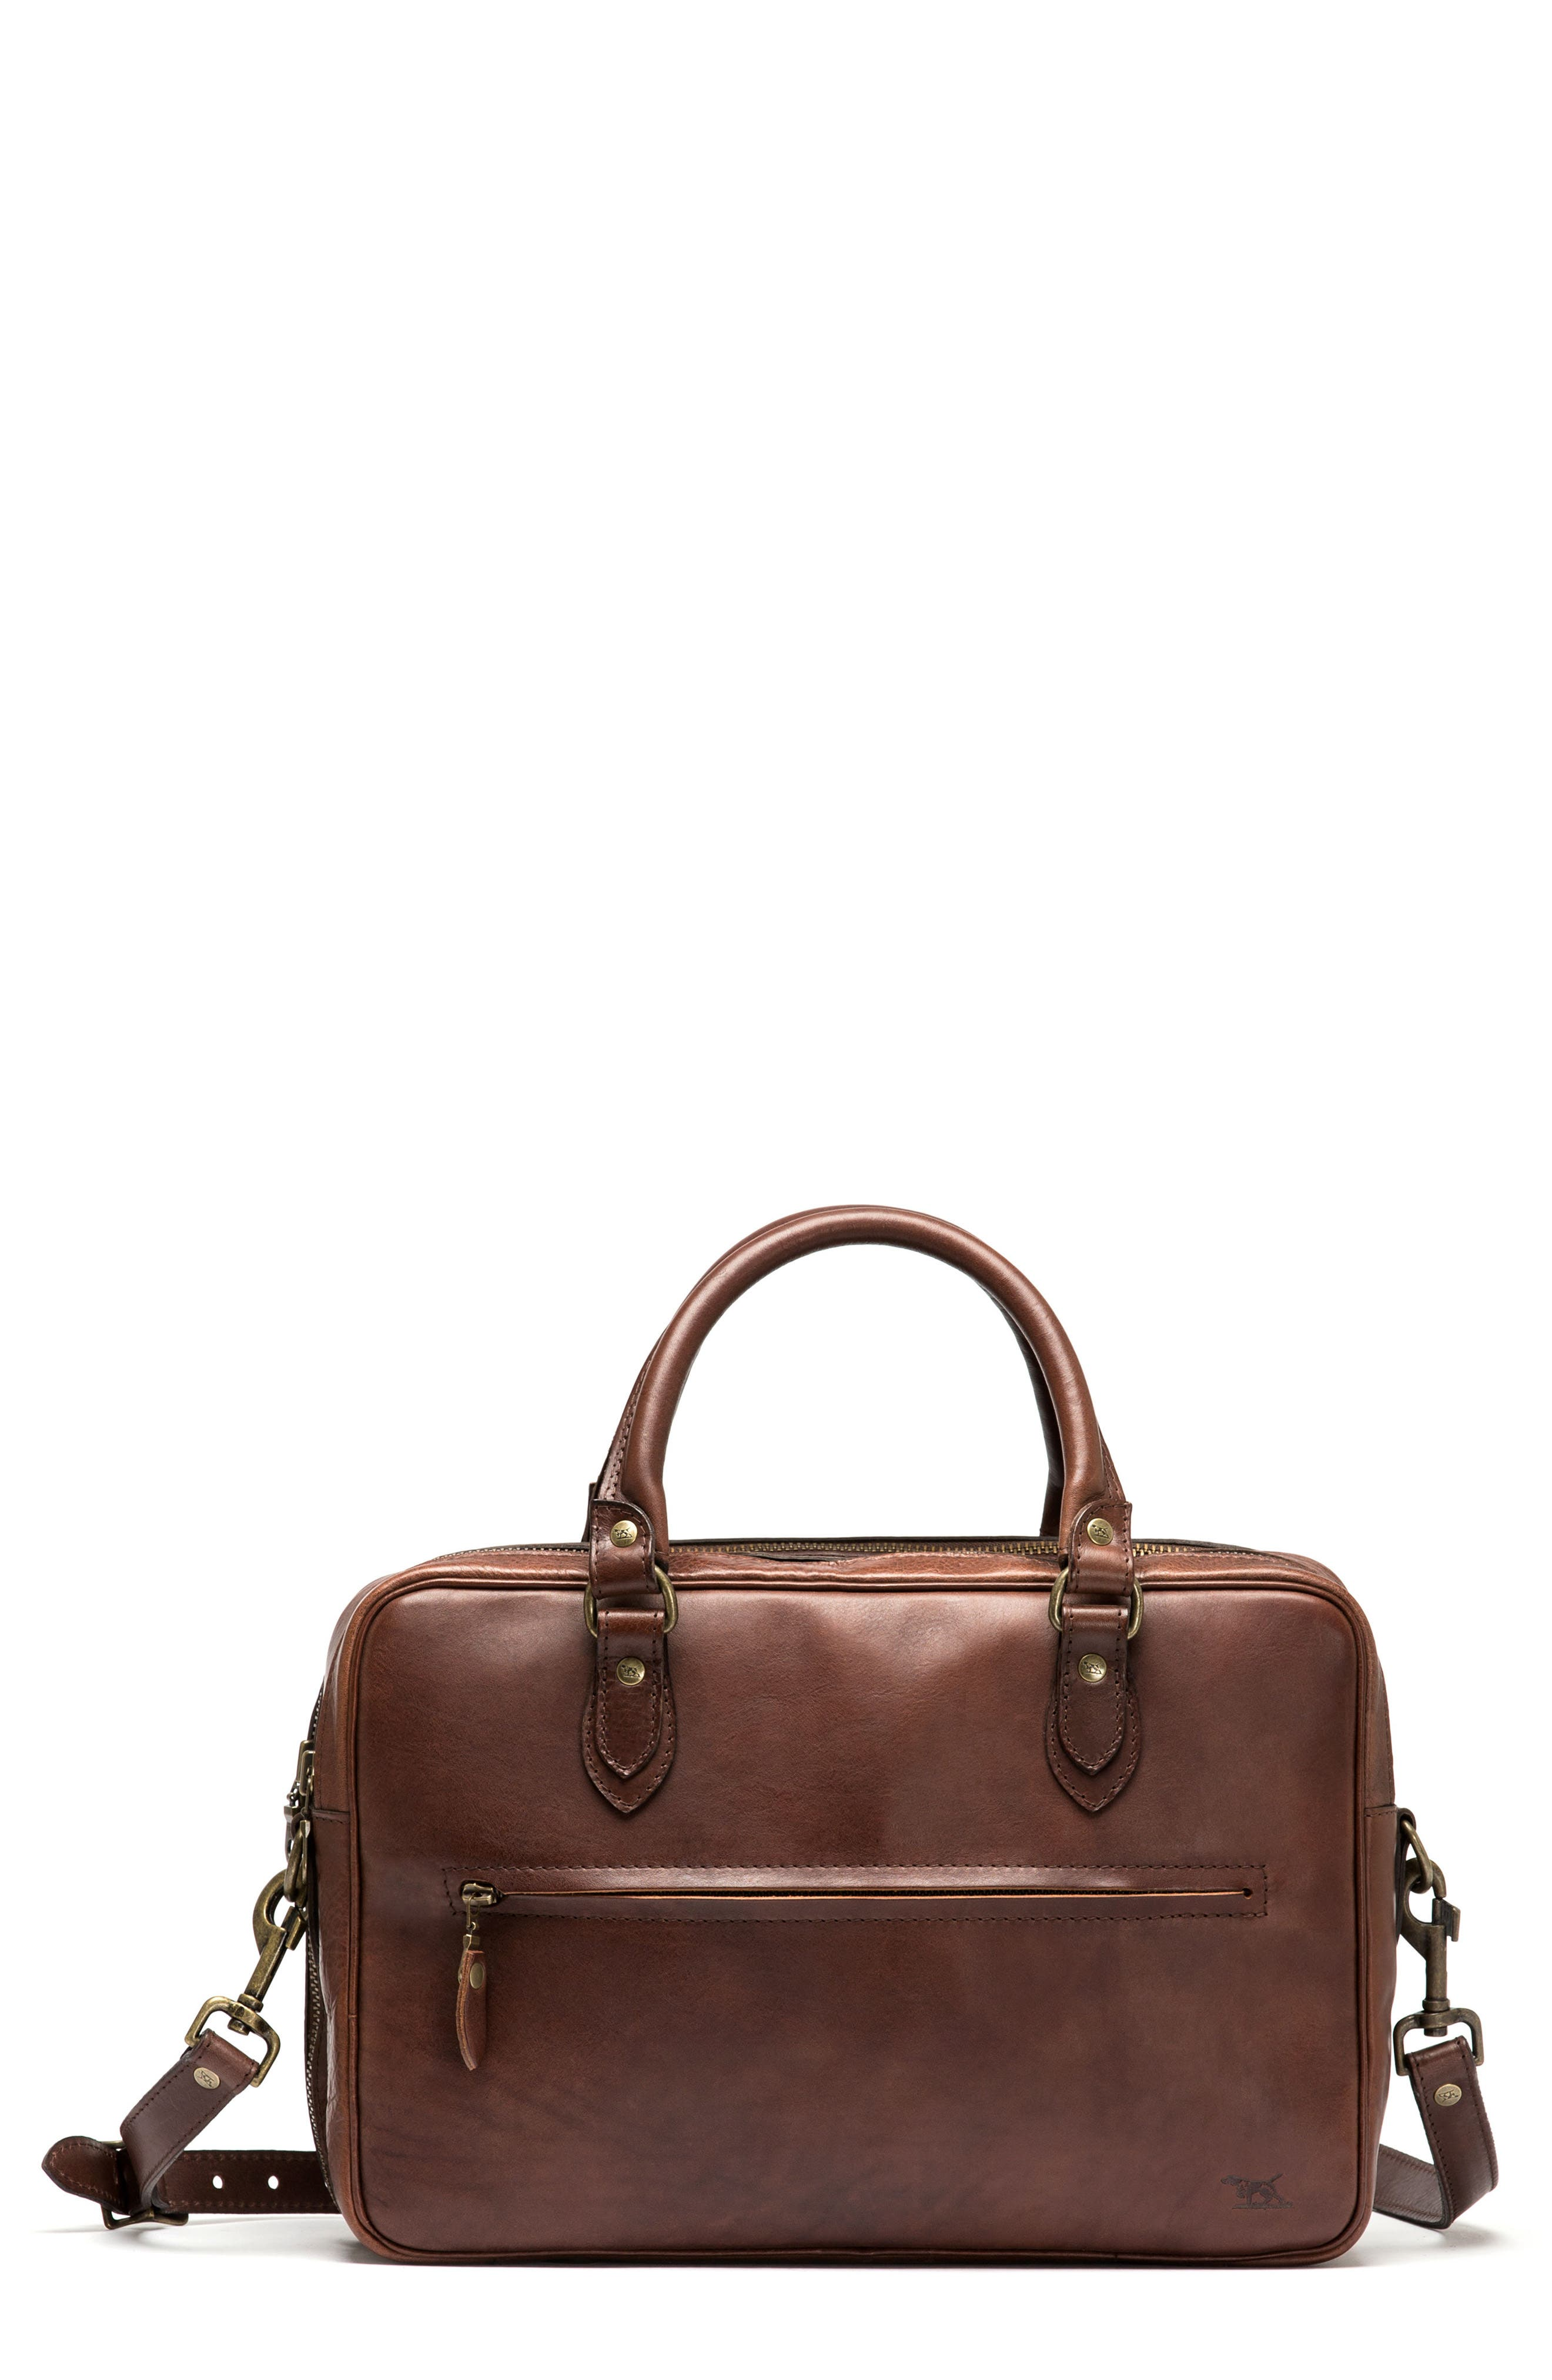 Britomart Leather Briefcase,                             Main thumbnail 1, color,                             216